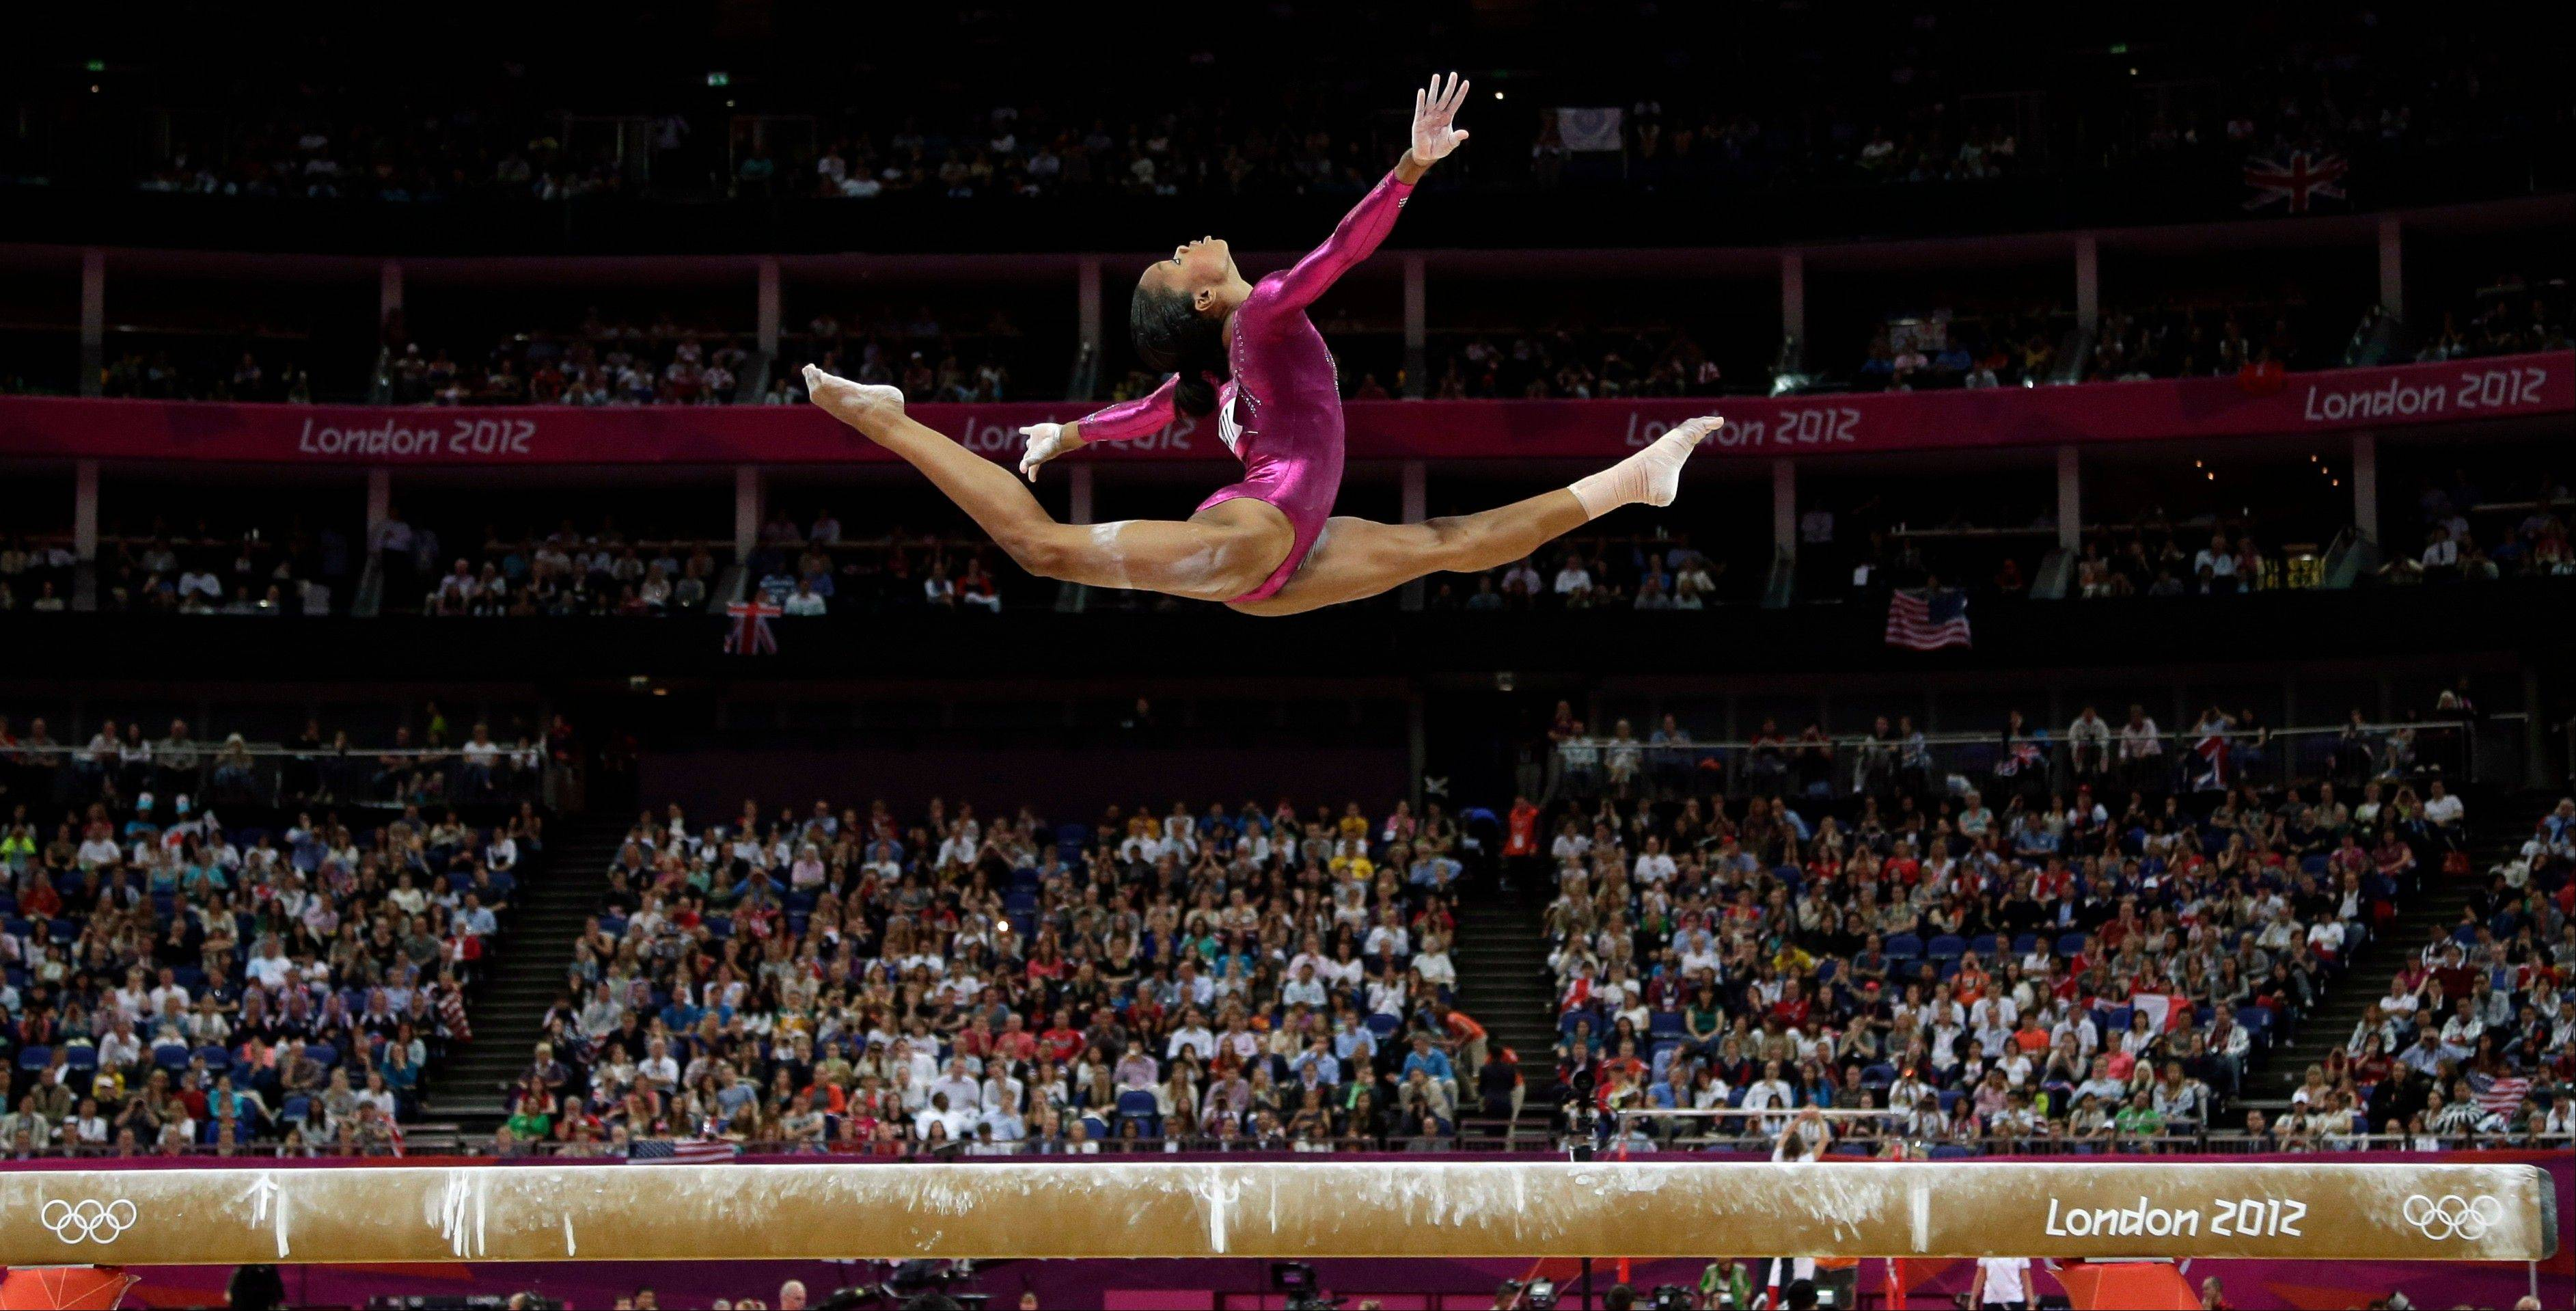 AP photographer Gregory Bull knew it would come -- the moment when Gabby Douglas does that little bit extra. Her leap, high above the beam, in the women's all-around individual gymnastics competition on Thursday is one of the iconic shots of the London Games.